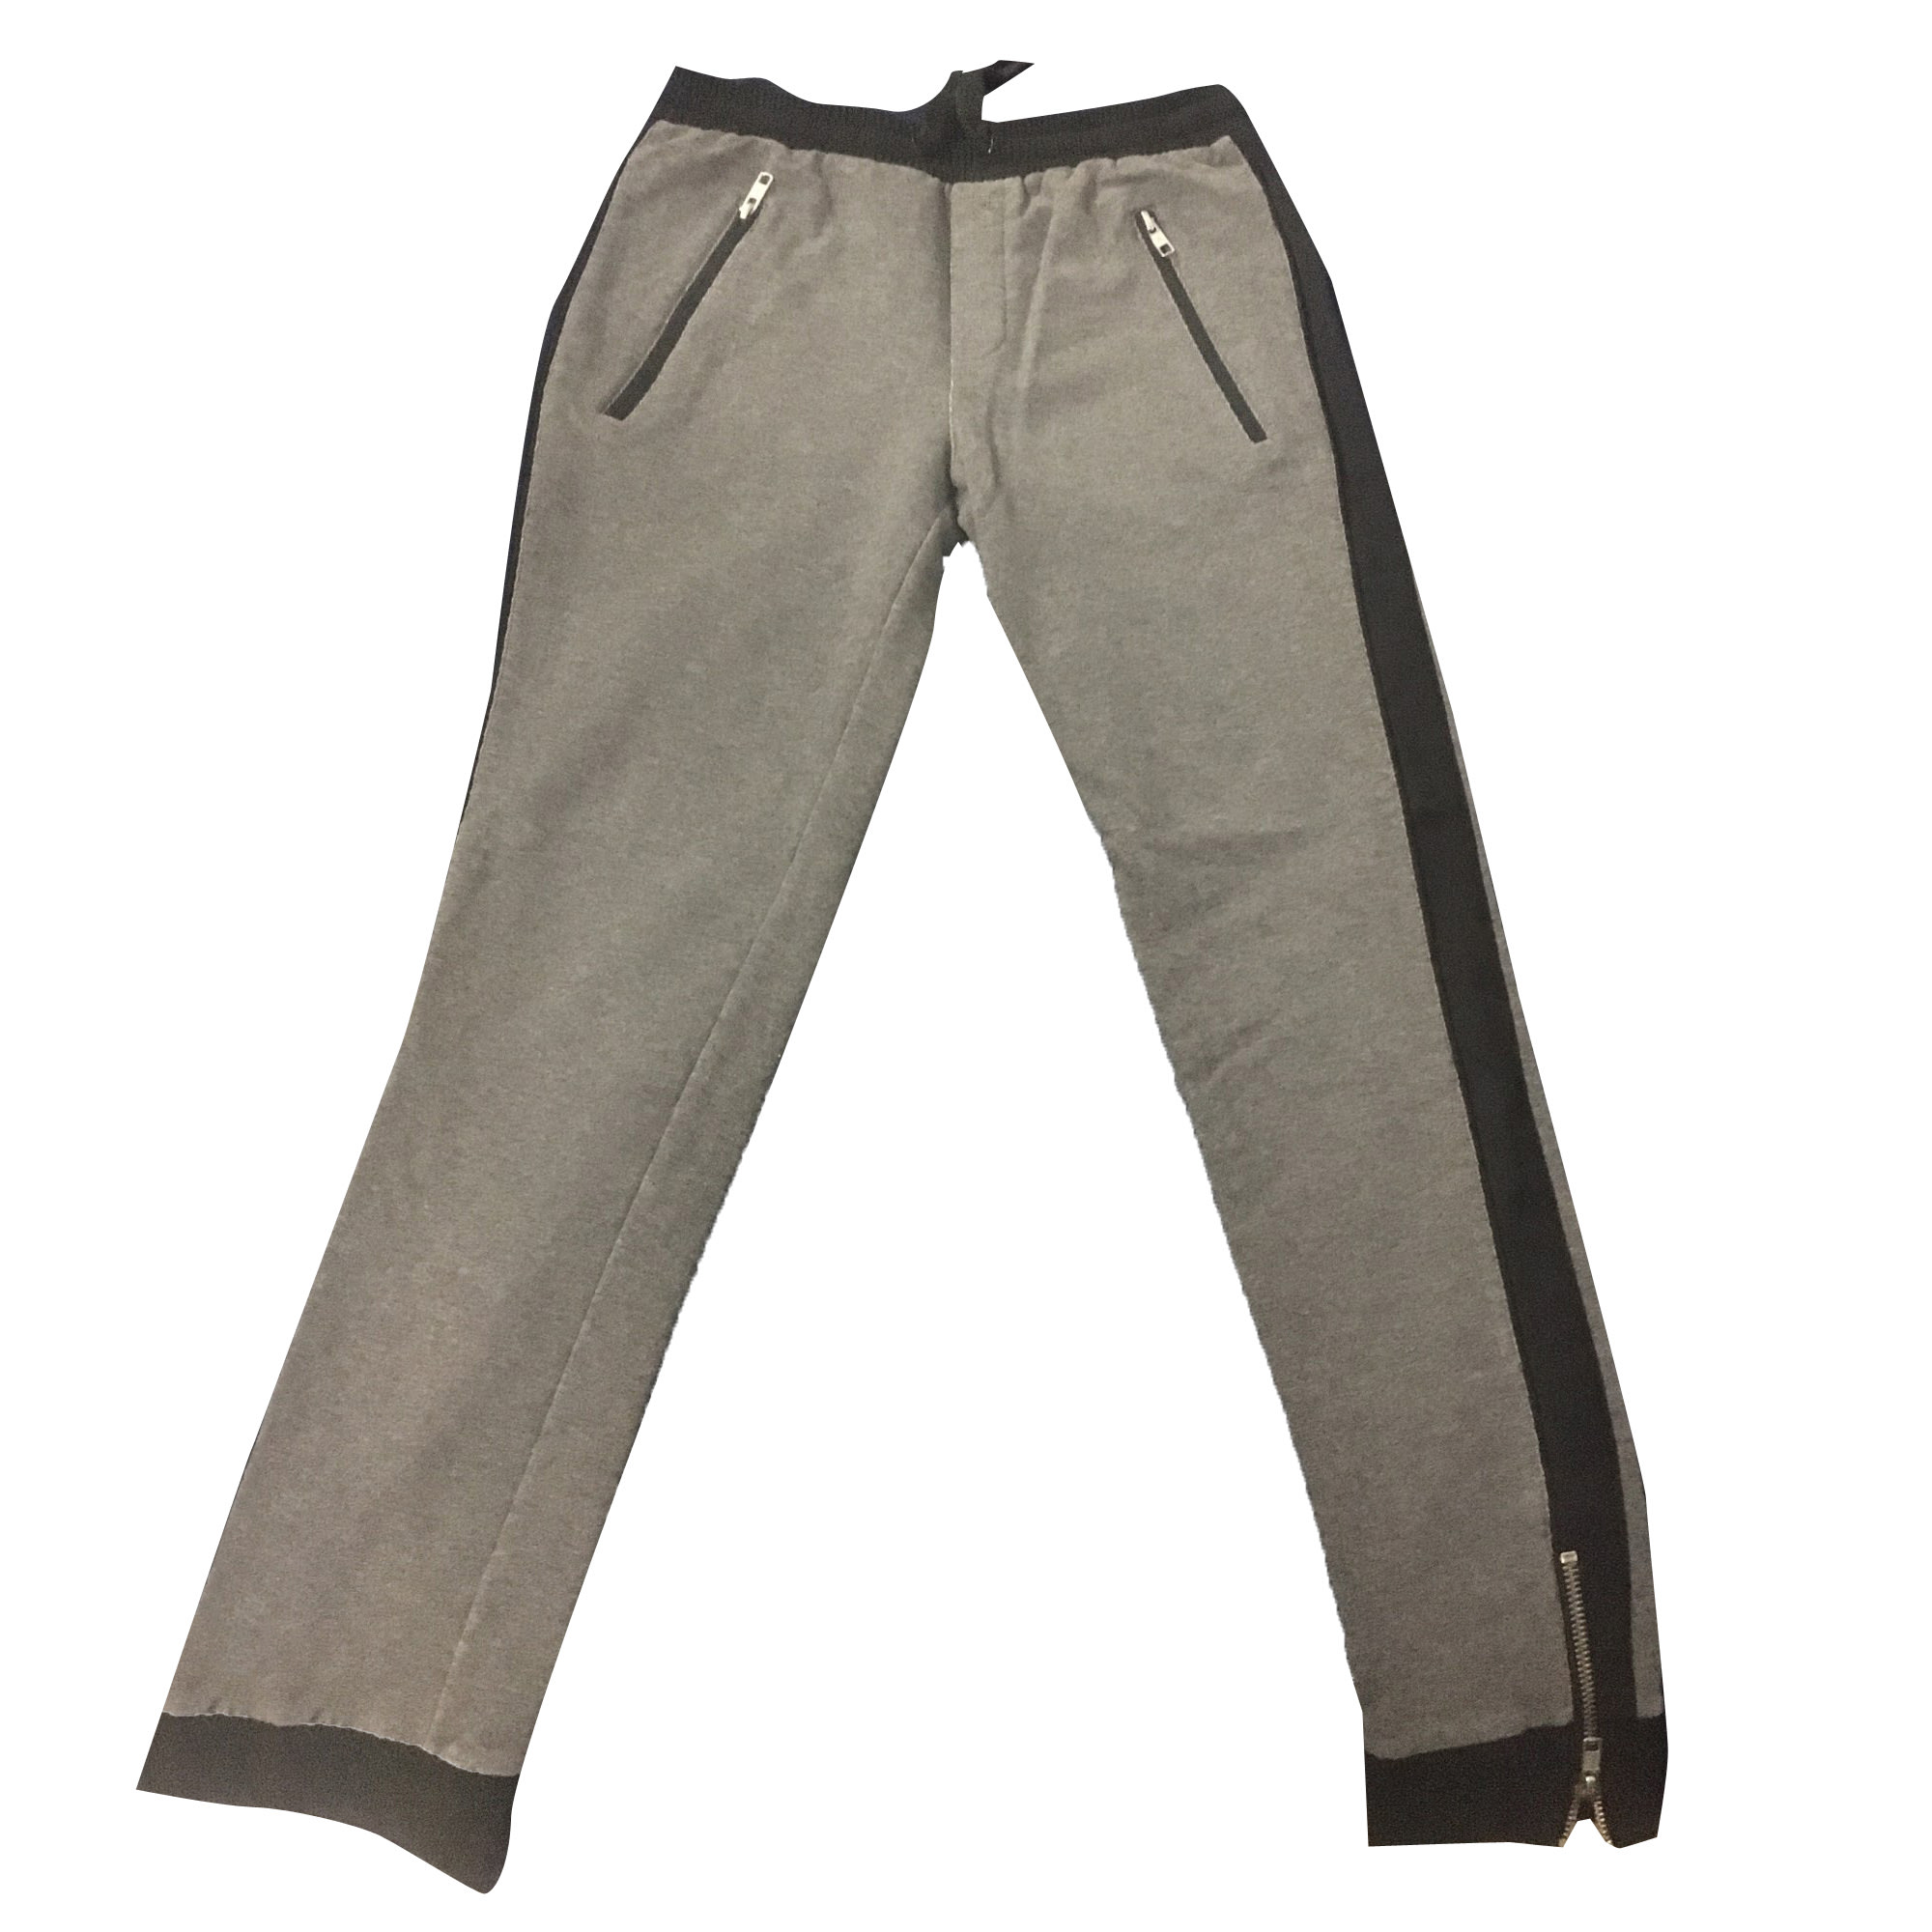 Pantalon slim, cigarette THE KOOPLES Gris, anthracite